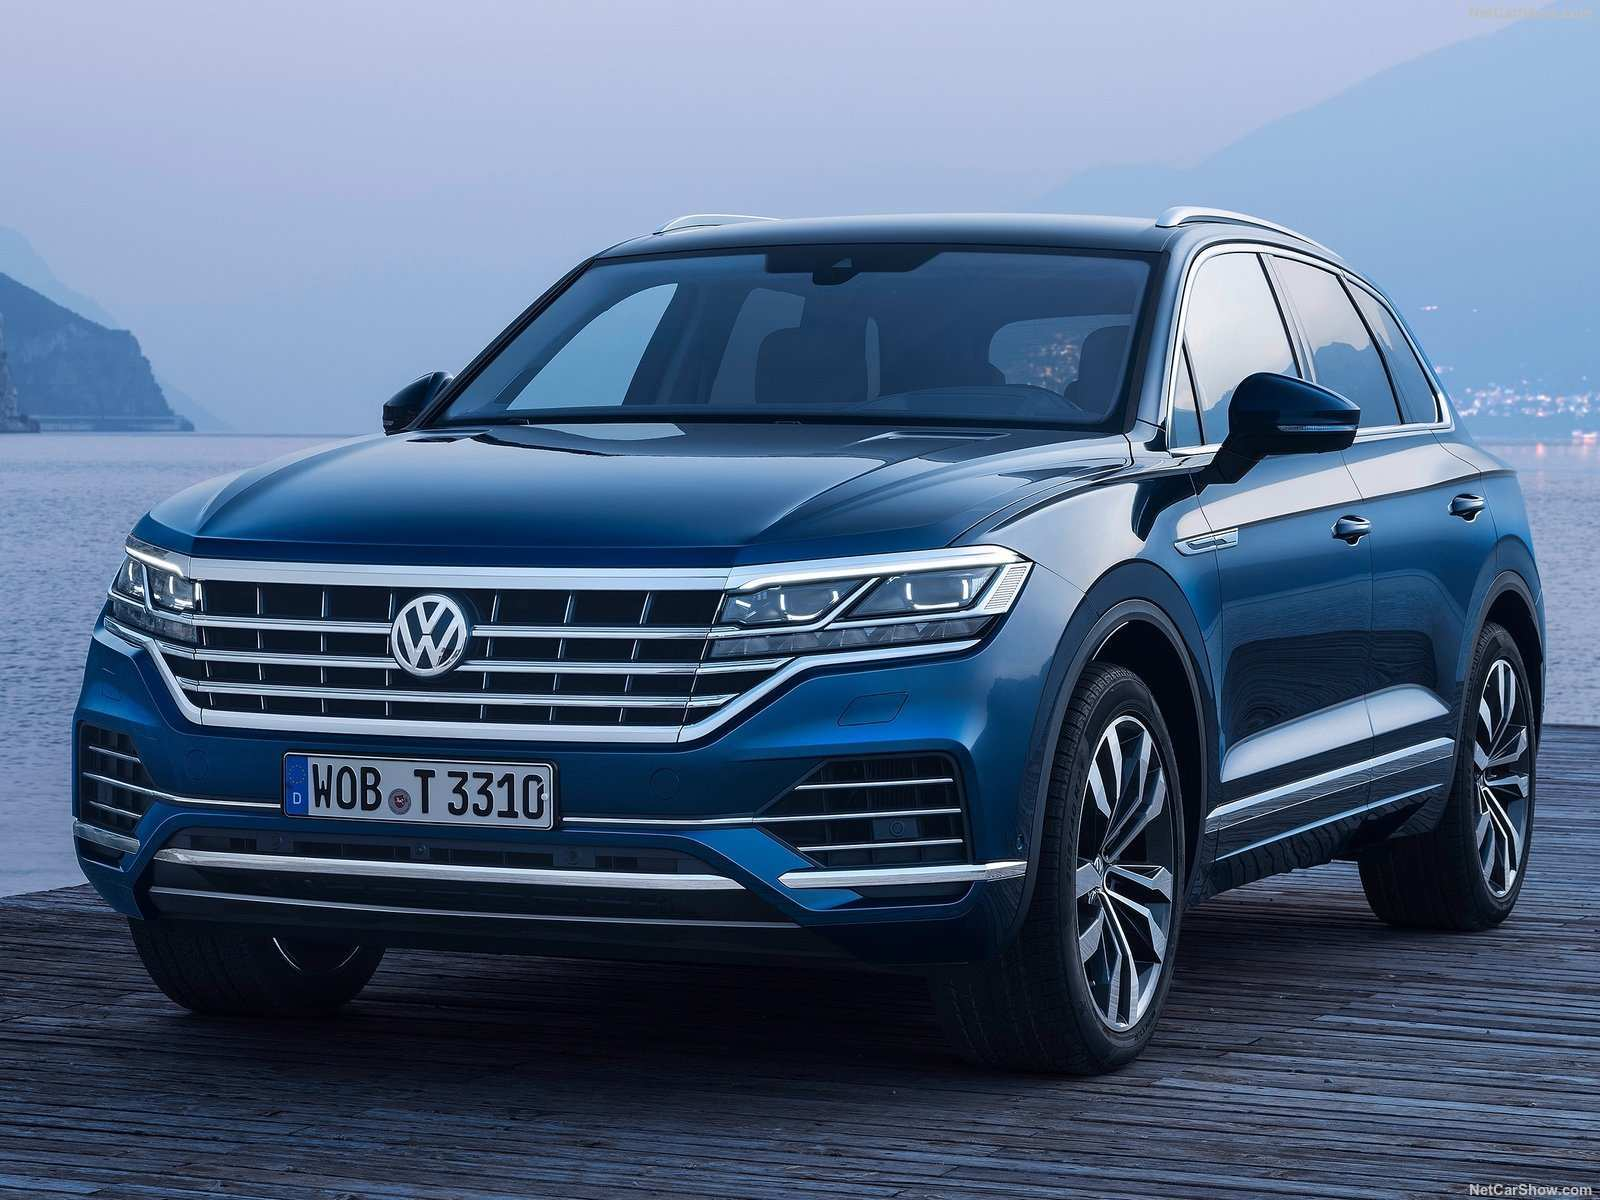 79 All New Volkswagen Touareg 2019 Off Road Specs Model for Volkswagen Touareg 2019 Off Road Specs